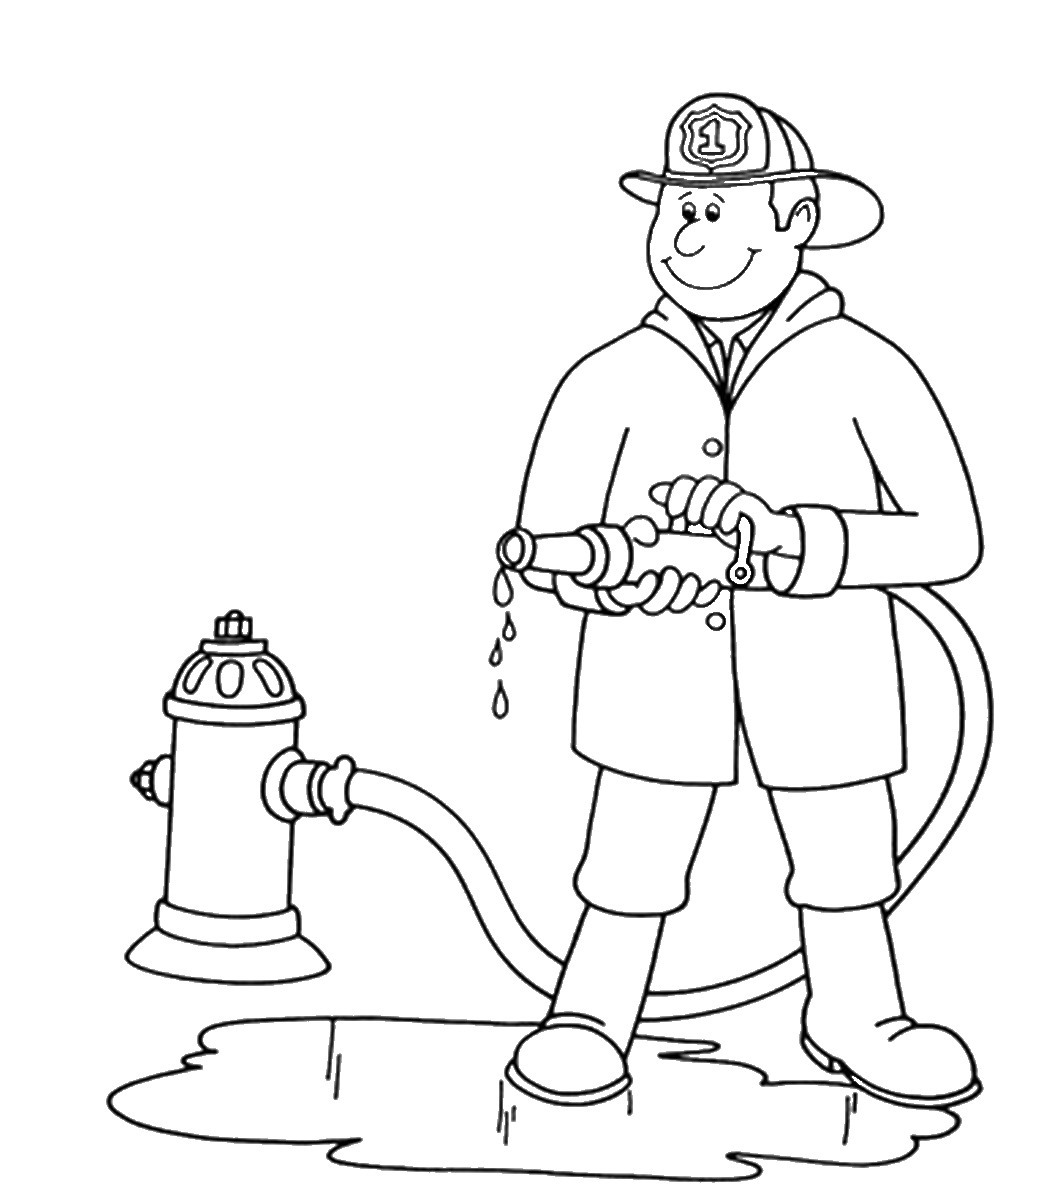 Free Firefighter Cliparts Black, Download Free Clip Art, Free Clip.